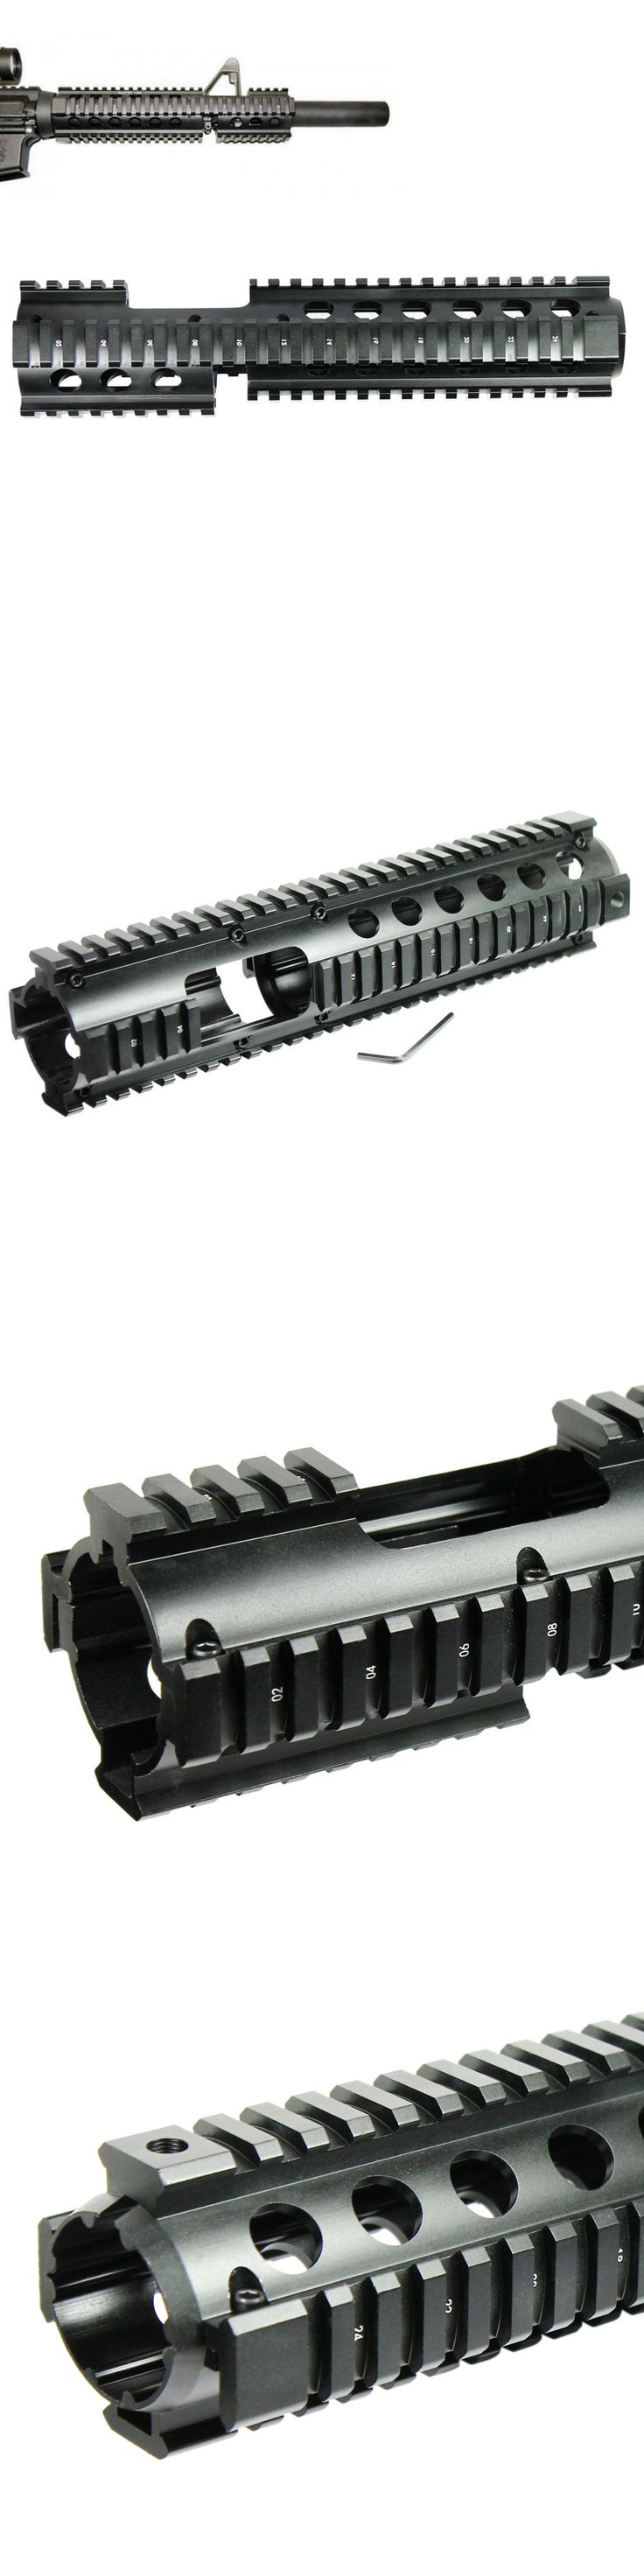 Scope Mounts and Accessories 52510: Carbine Length .223/5.56 Quad Rail 3-Piece Drop In With Front Sight Extension -> BUY IT NOW ONLY: $32.95 on eBay!